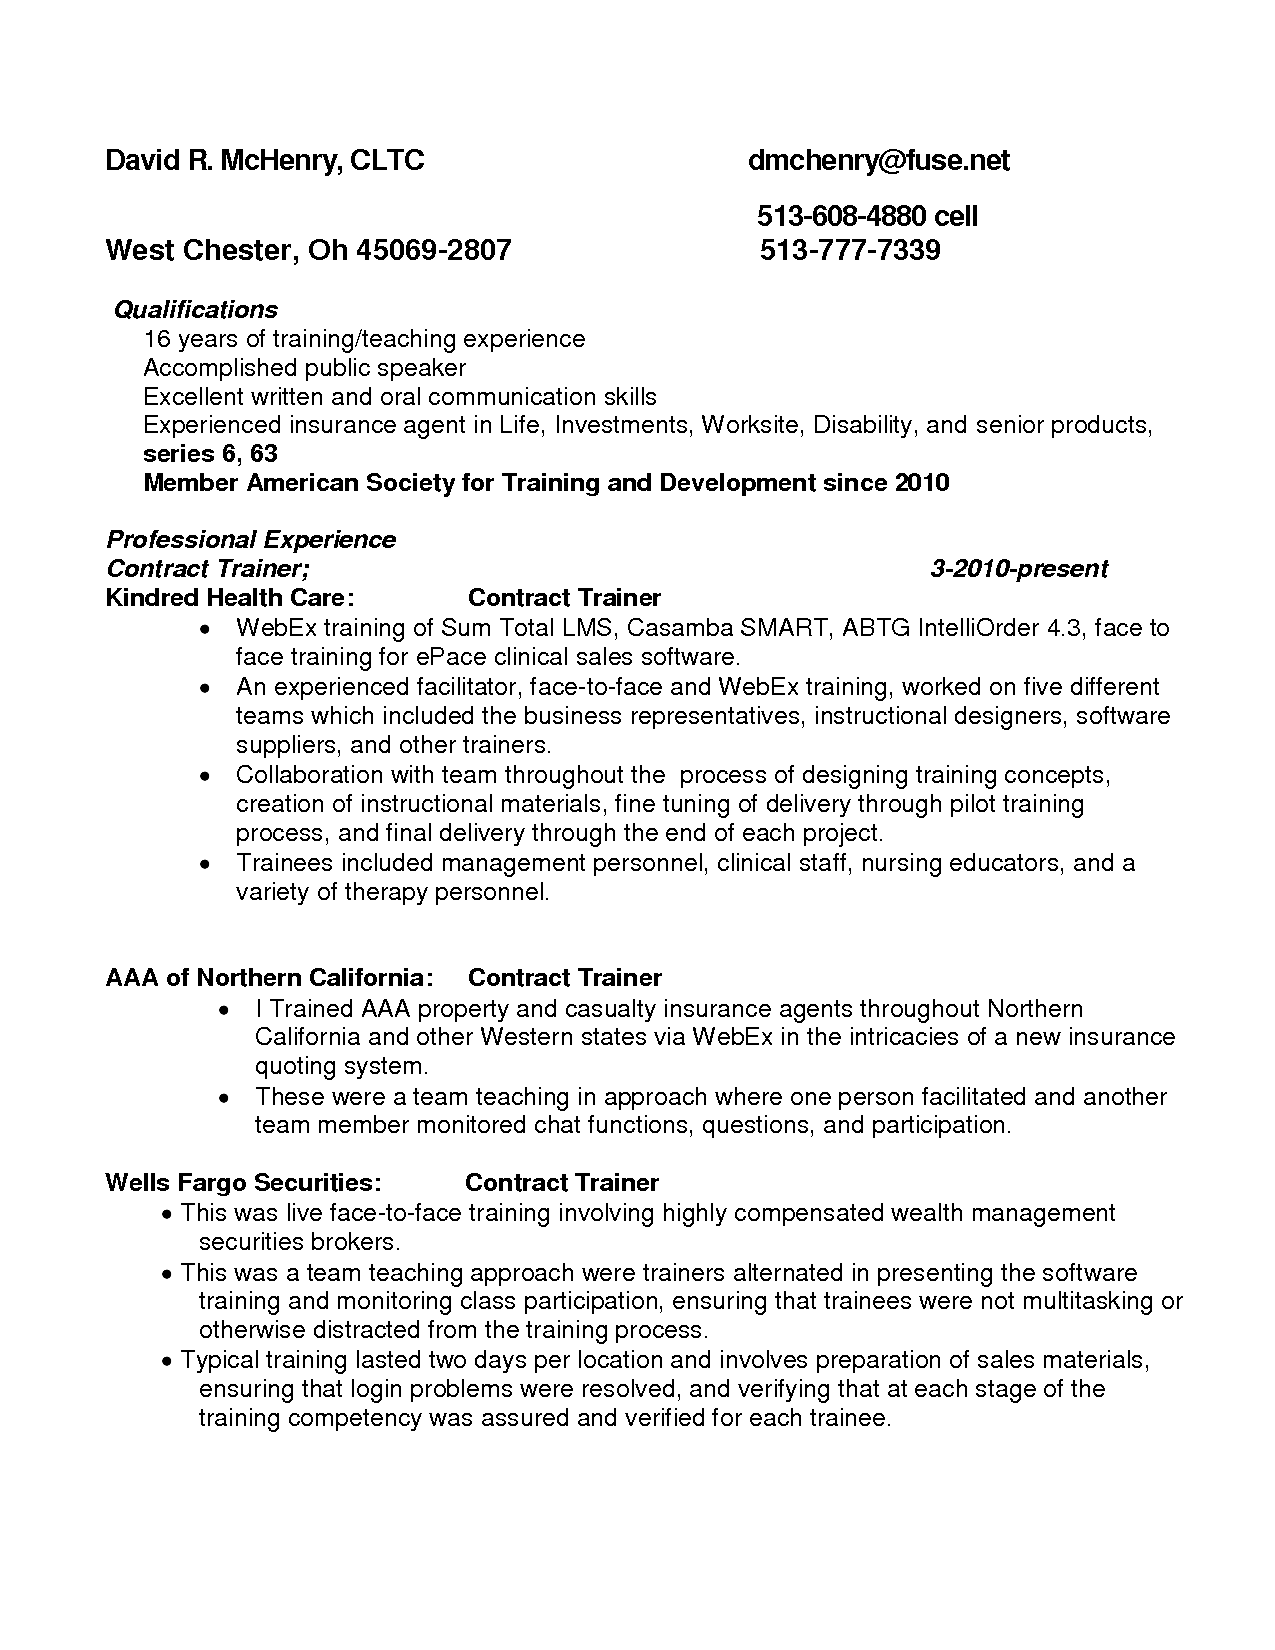 Resume Examples Httpwwwjobresumewebsite Also Insurance Agent Free